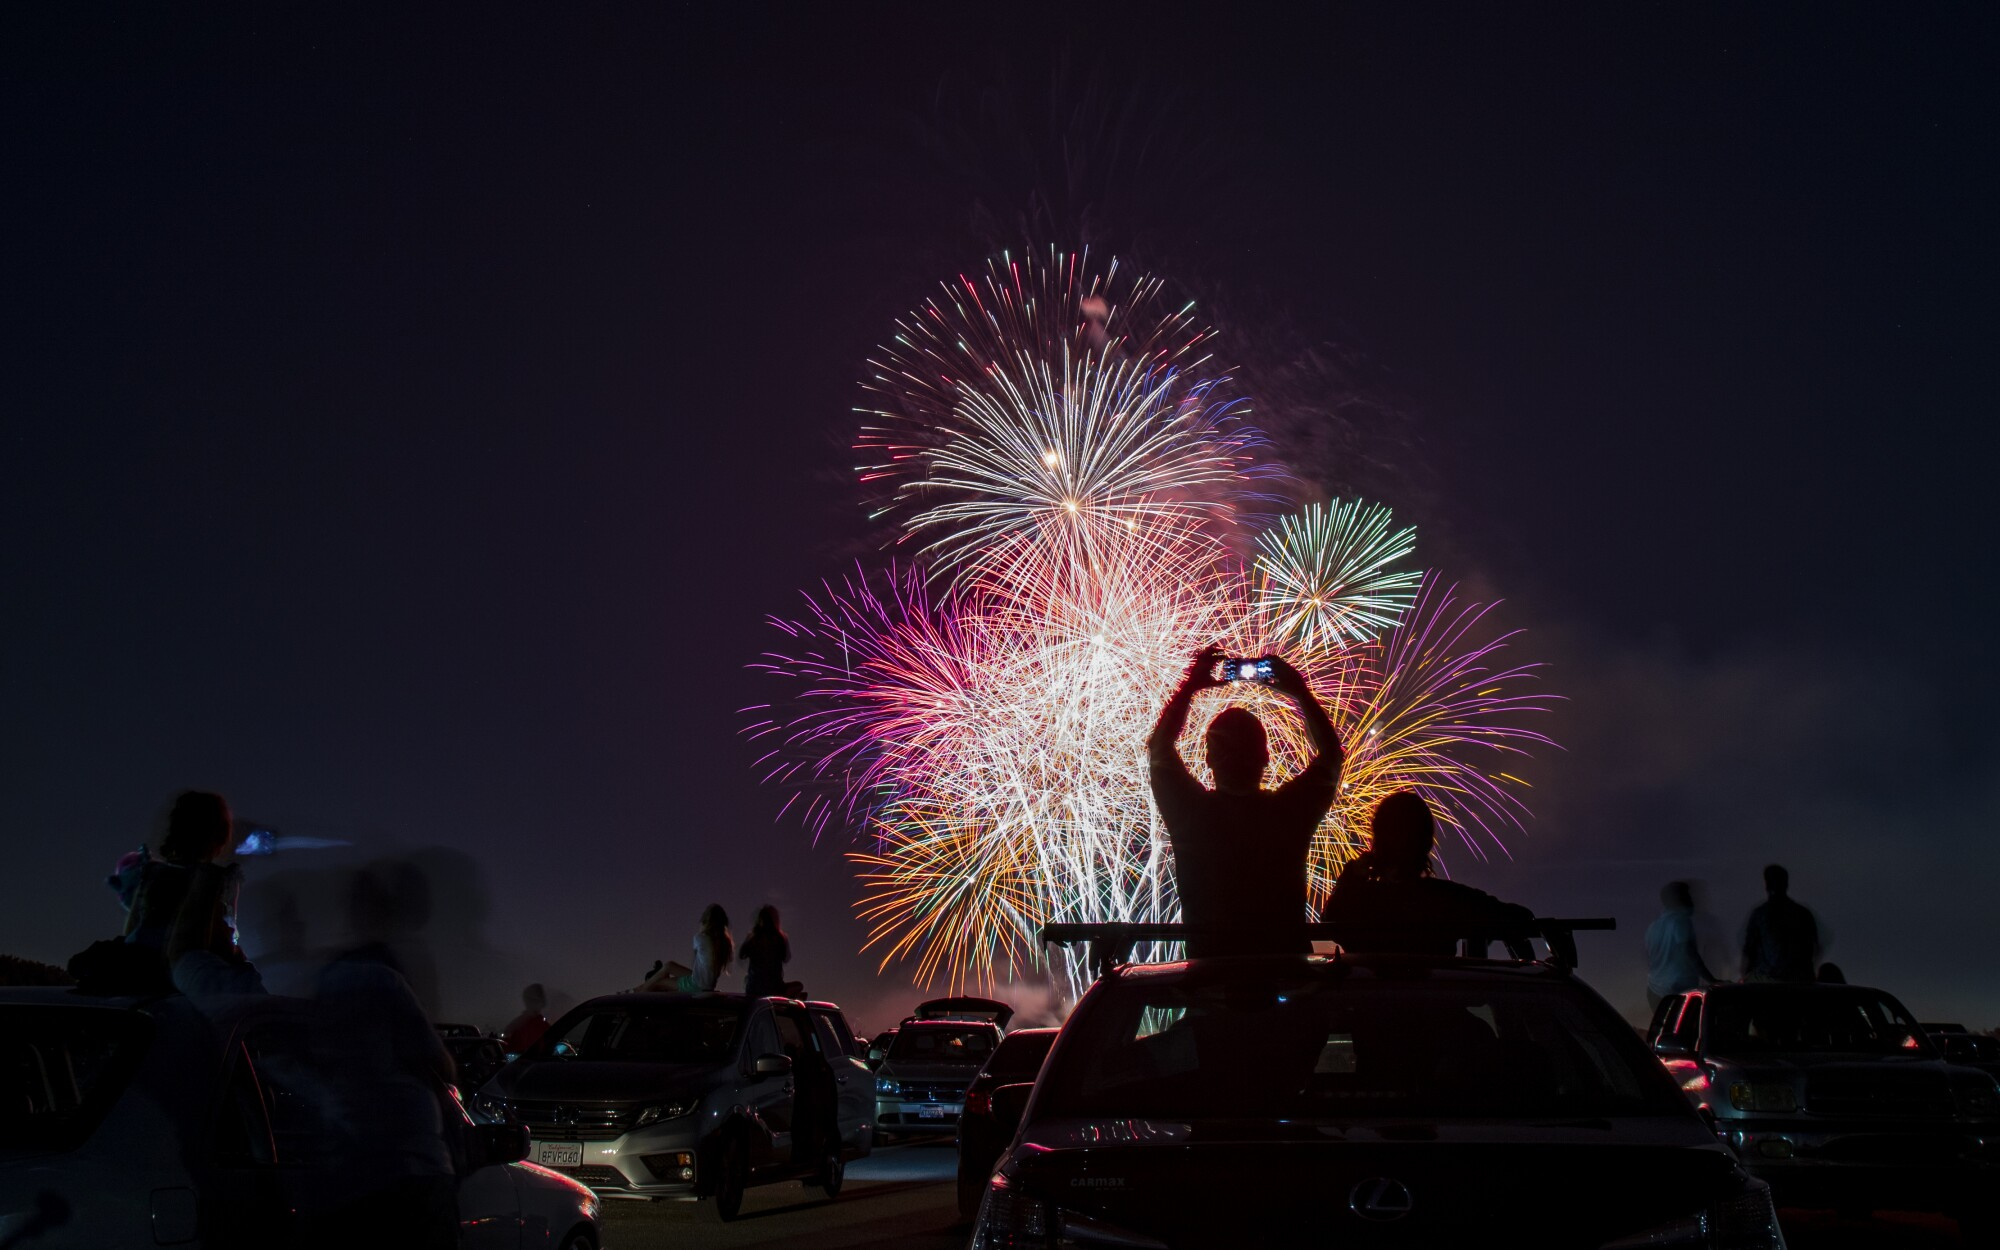 Spectators sit on the roofs of their vehicles to watch the fireworks during the Drive-Up 4th of July Spectacular